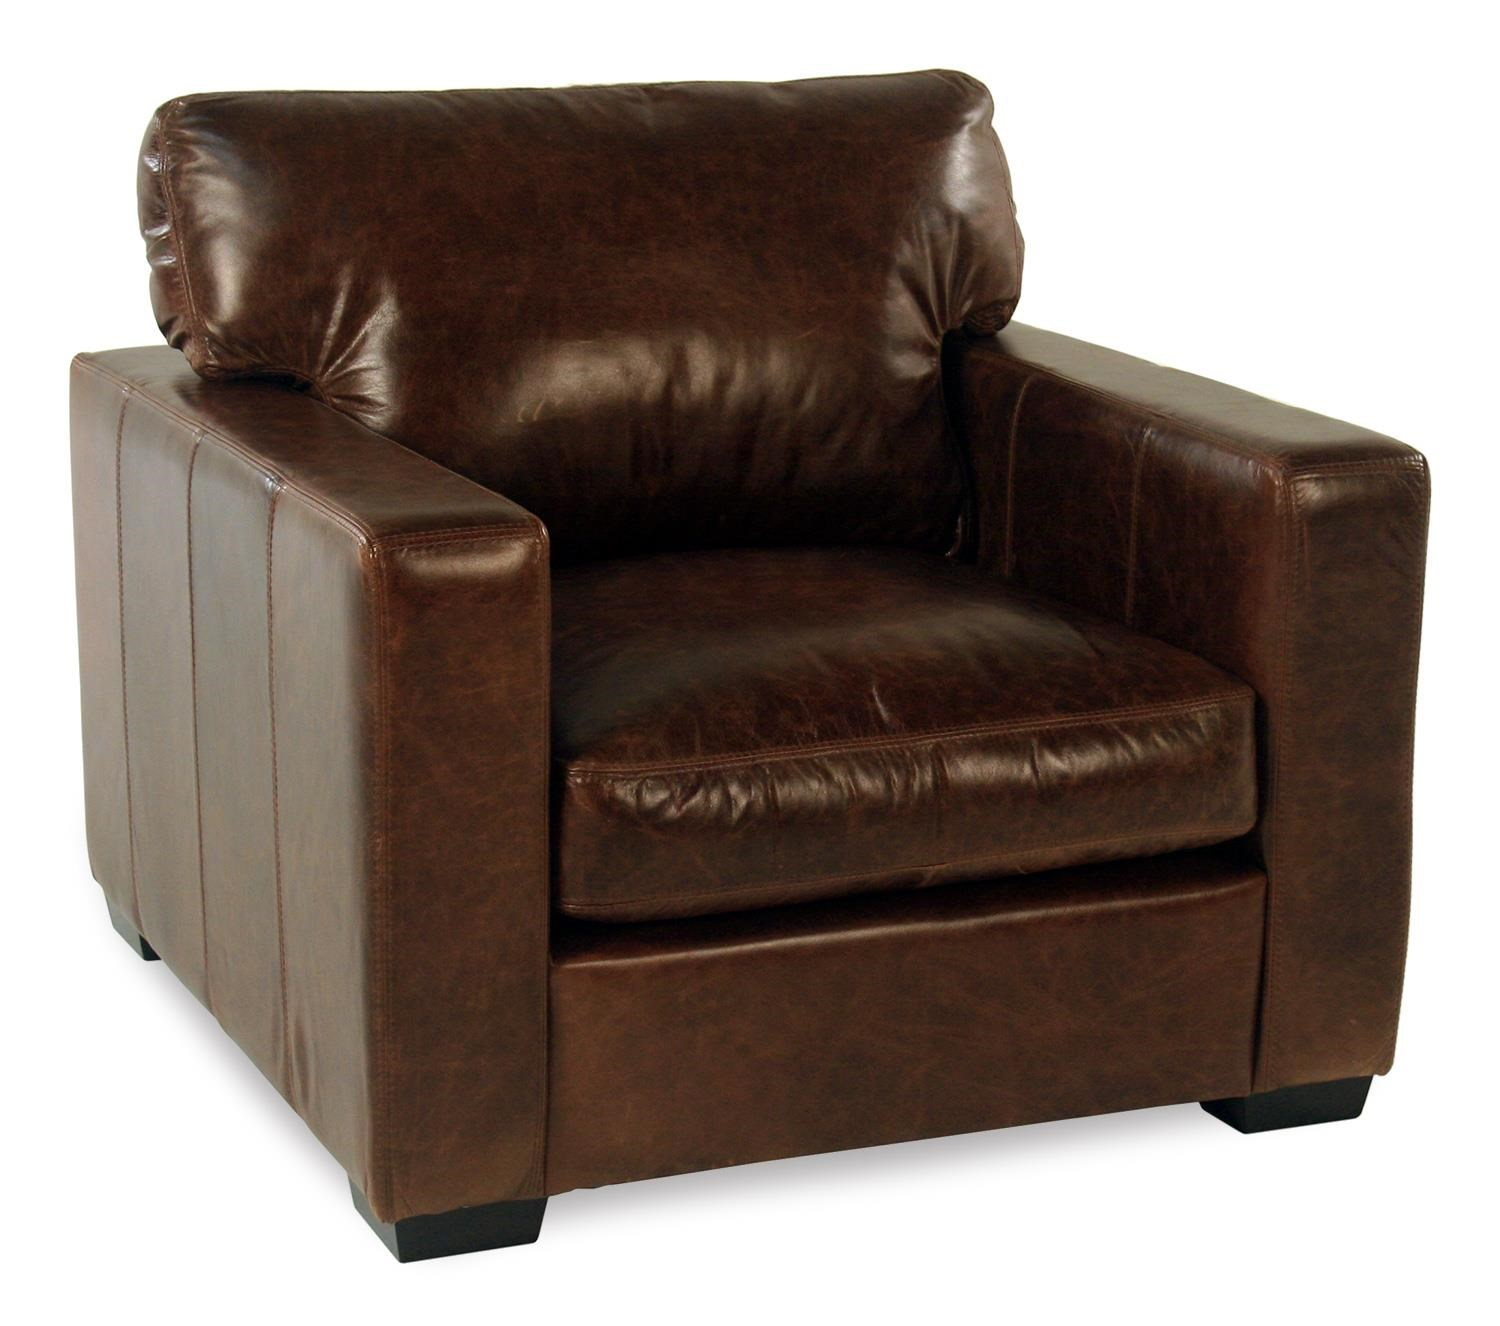 fireside leather chair w track arms rotmans upholstered chairs